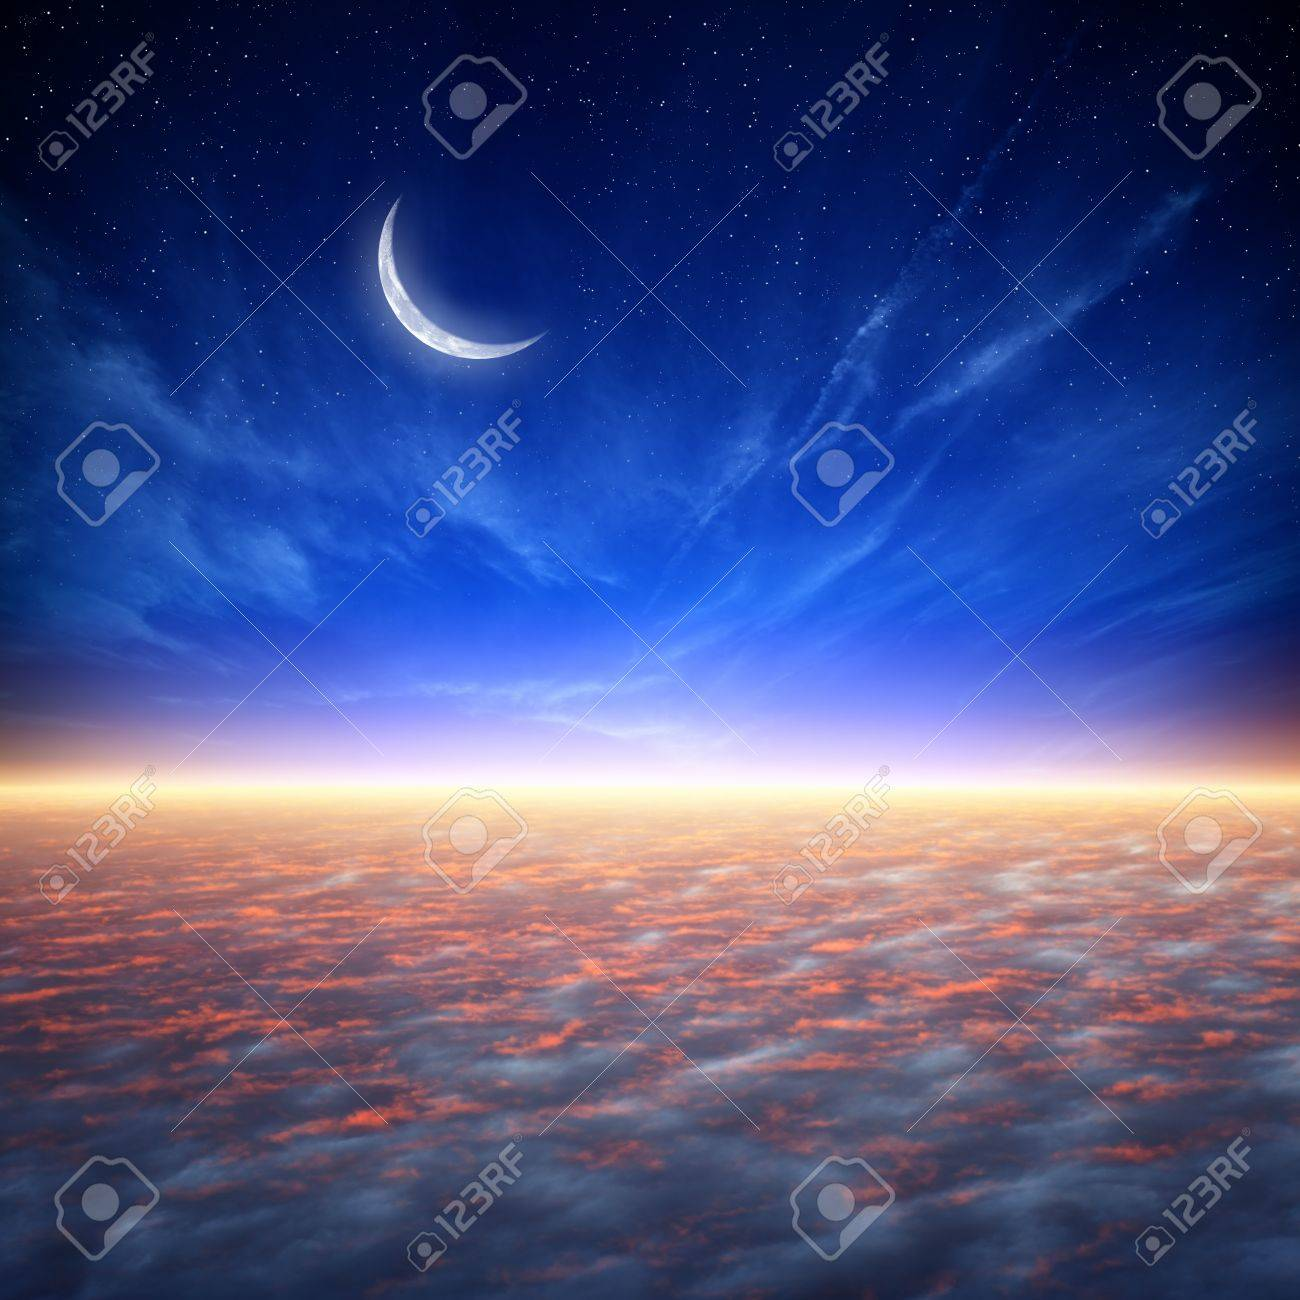 Peaceful background beautiful sunset blue sky with moon and peaceful background beautiful sunset blue sky with moon and stars glowing horizon voltagebd Images